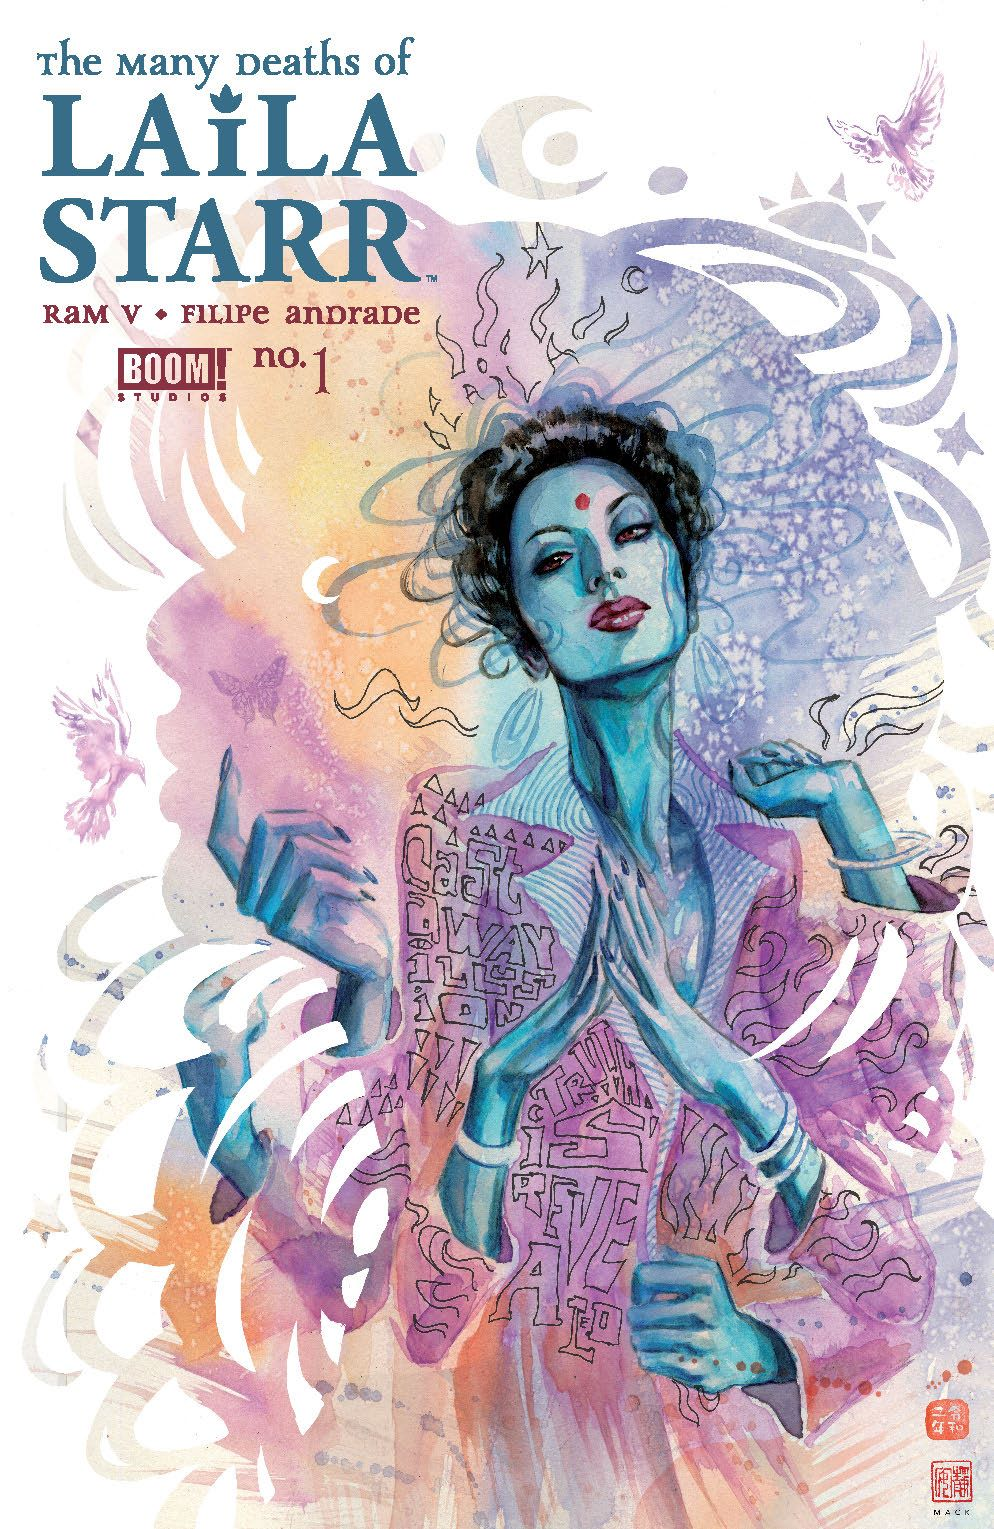 ManyDeathsLailaStarr_001_Cover_B_DeathFoil ComicList Previews: THE MANY DEATHS OF LAILA STARR #1